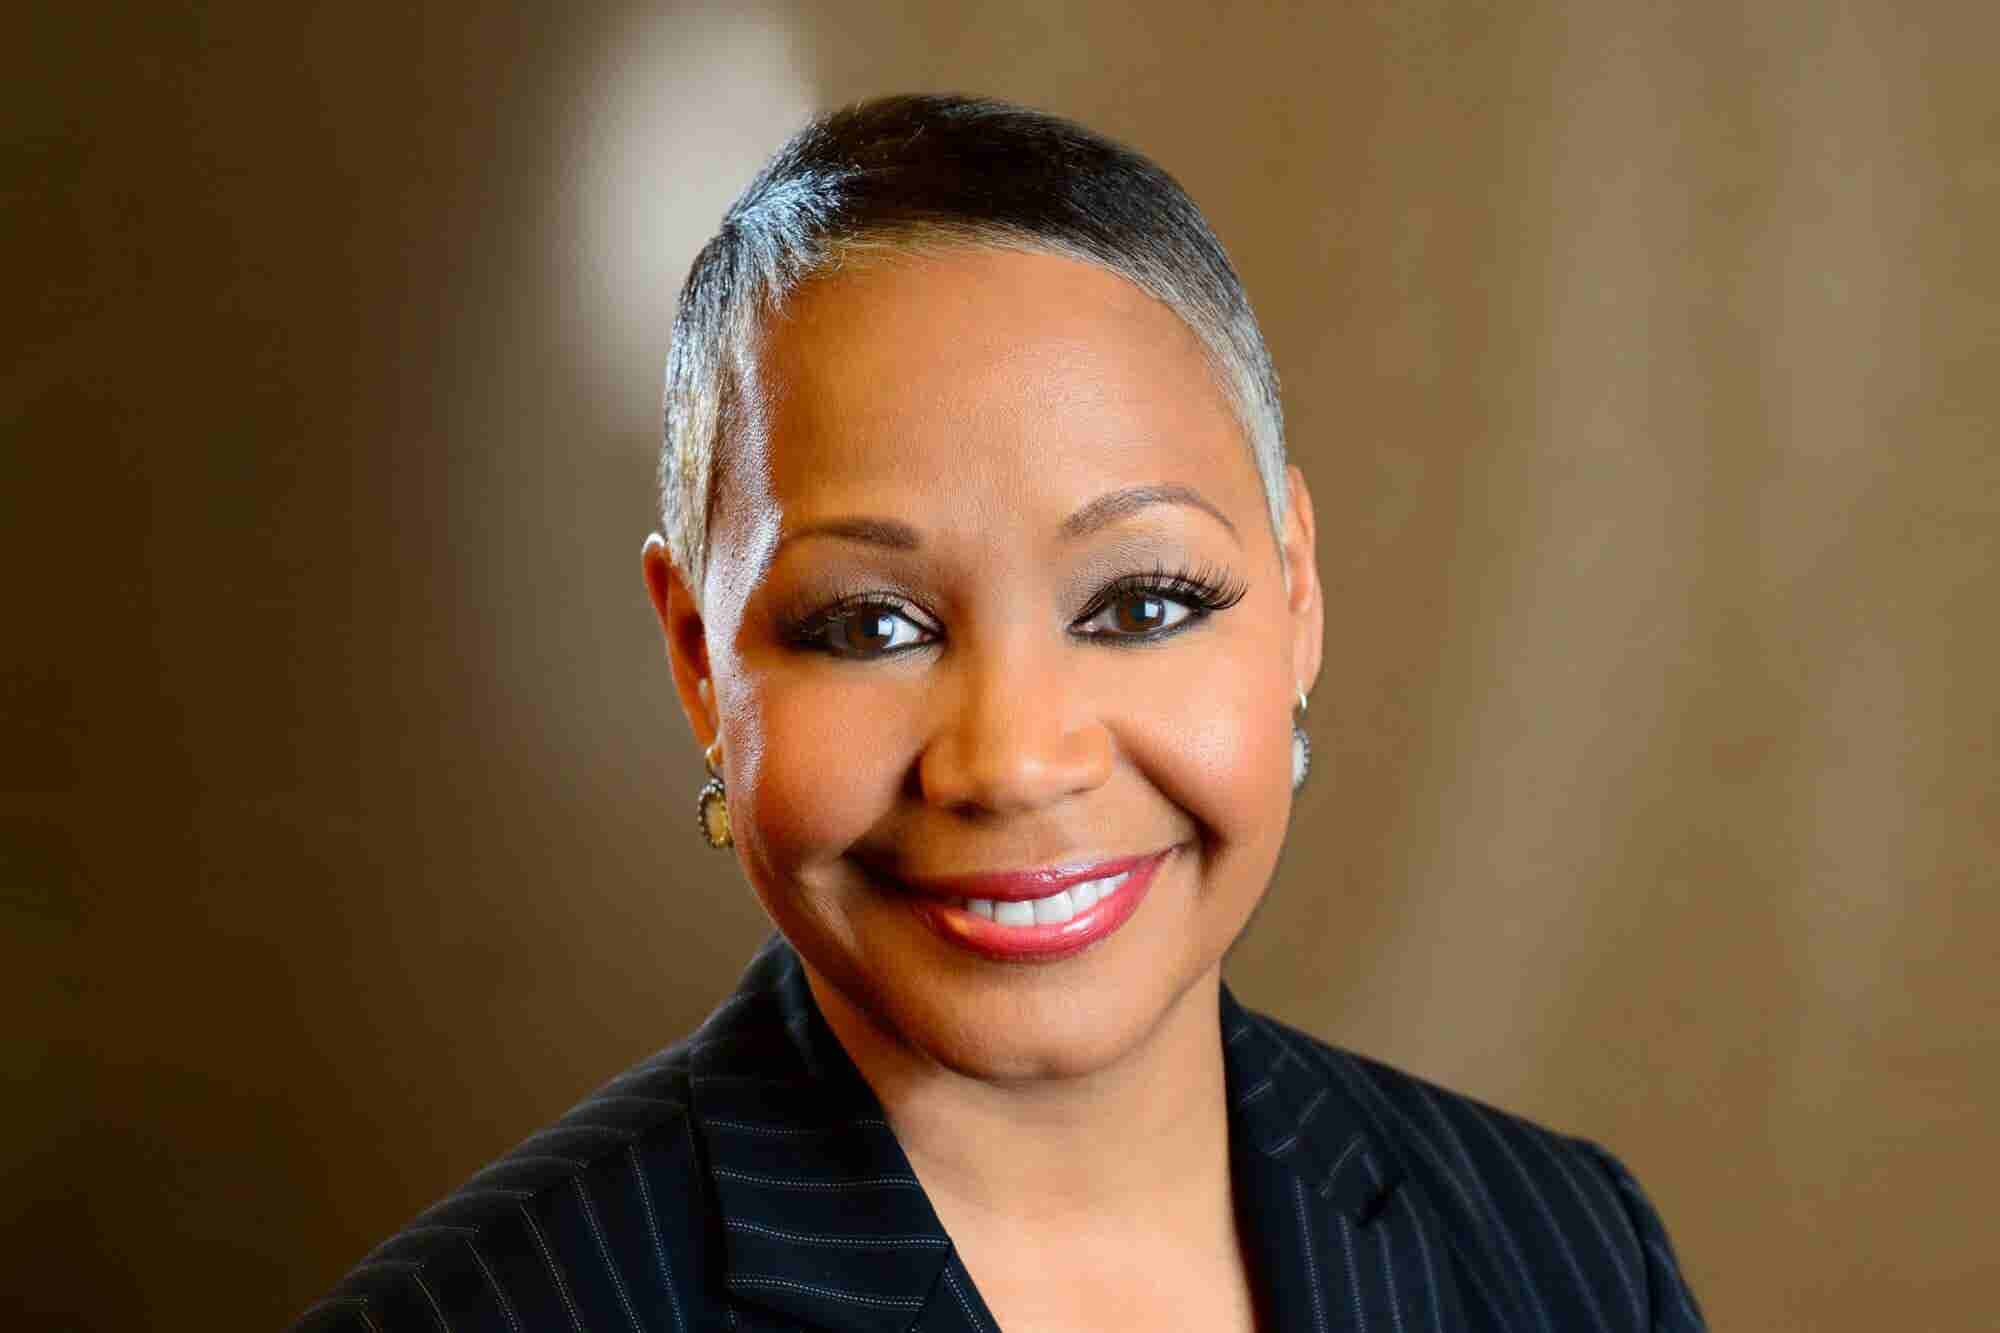 WNBA President Lisa Borders Shares Why She Believes 'Failure Is Not Fatal, It's Feedback'